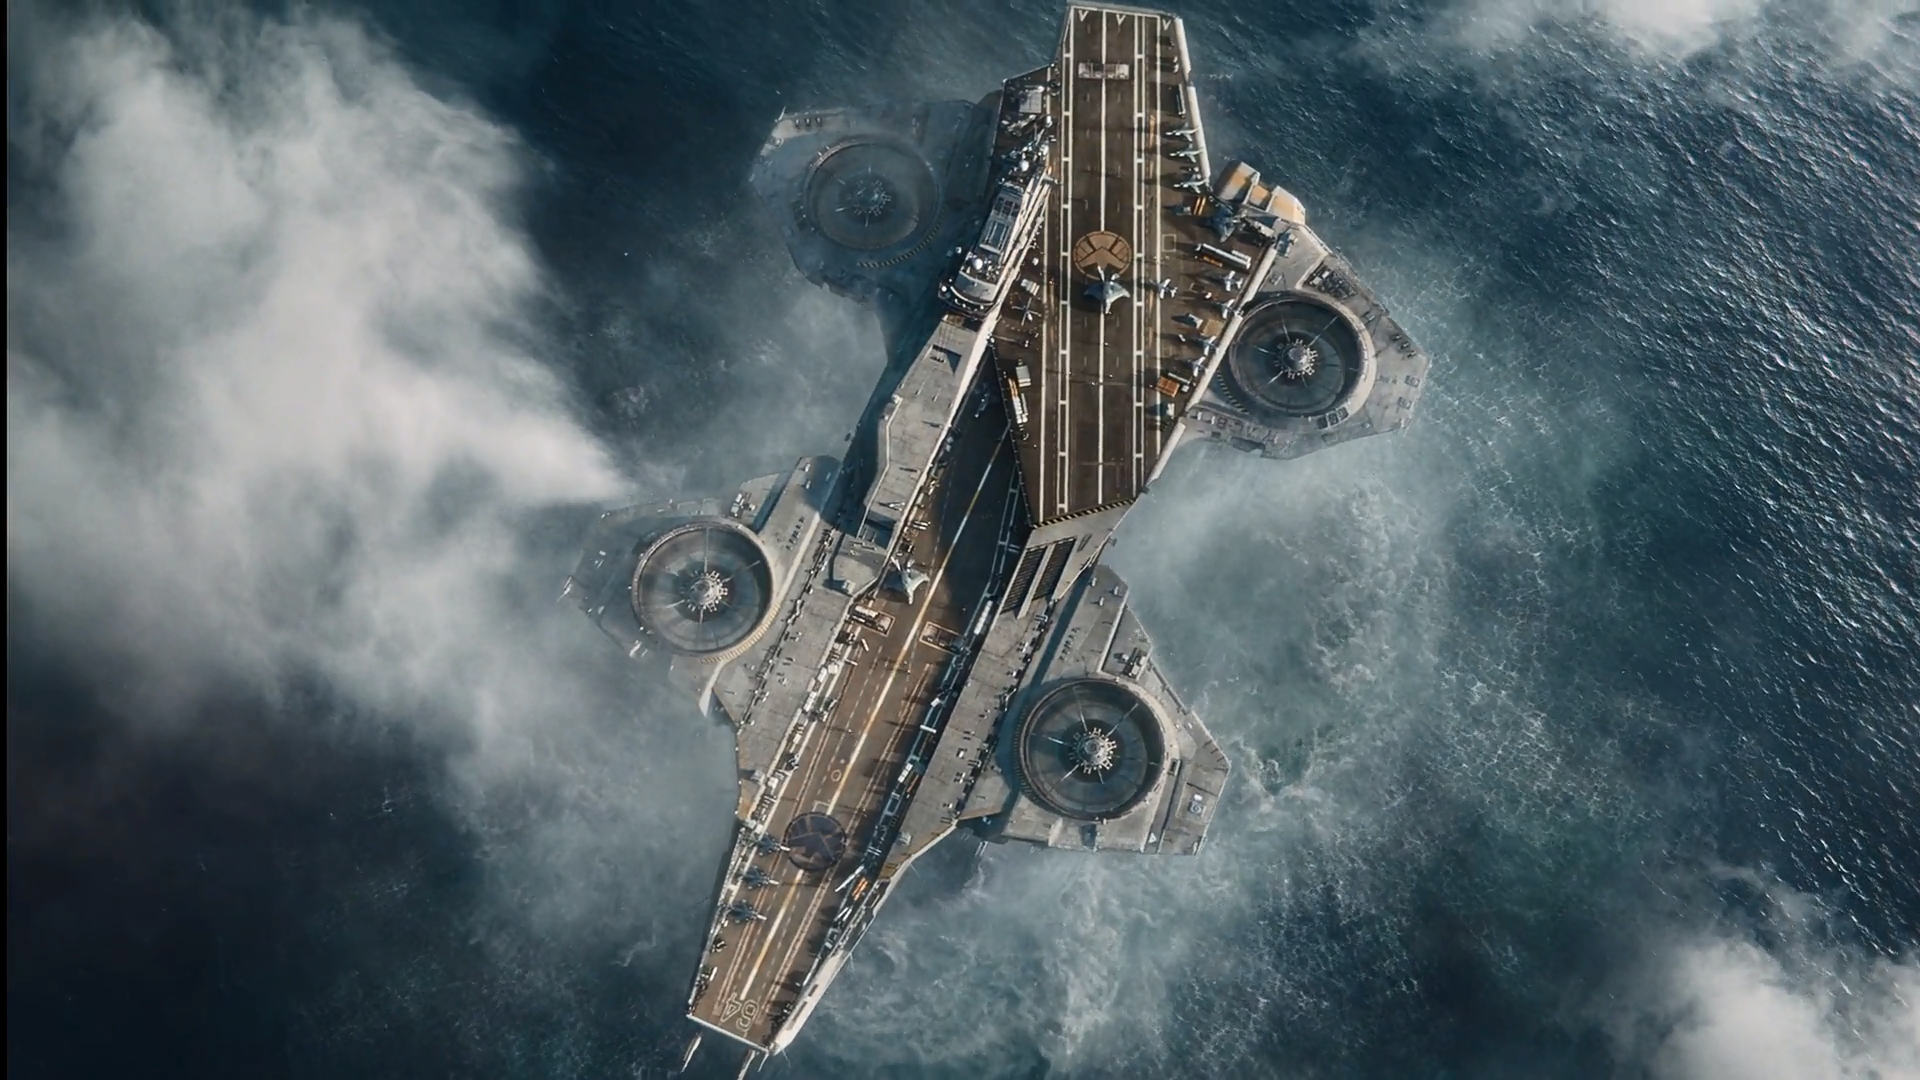 Helicarrier marvel cinematic universe wiki fandom powered by wikia helicarrier malvernweather Choice Image